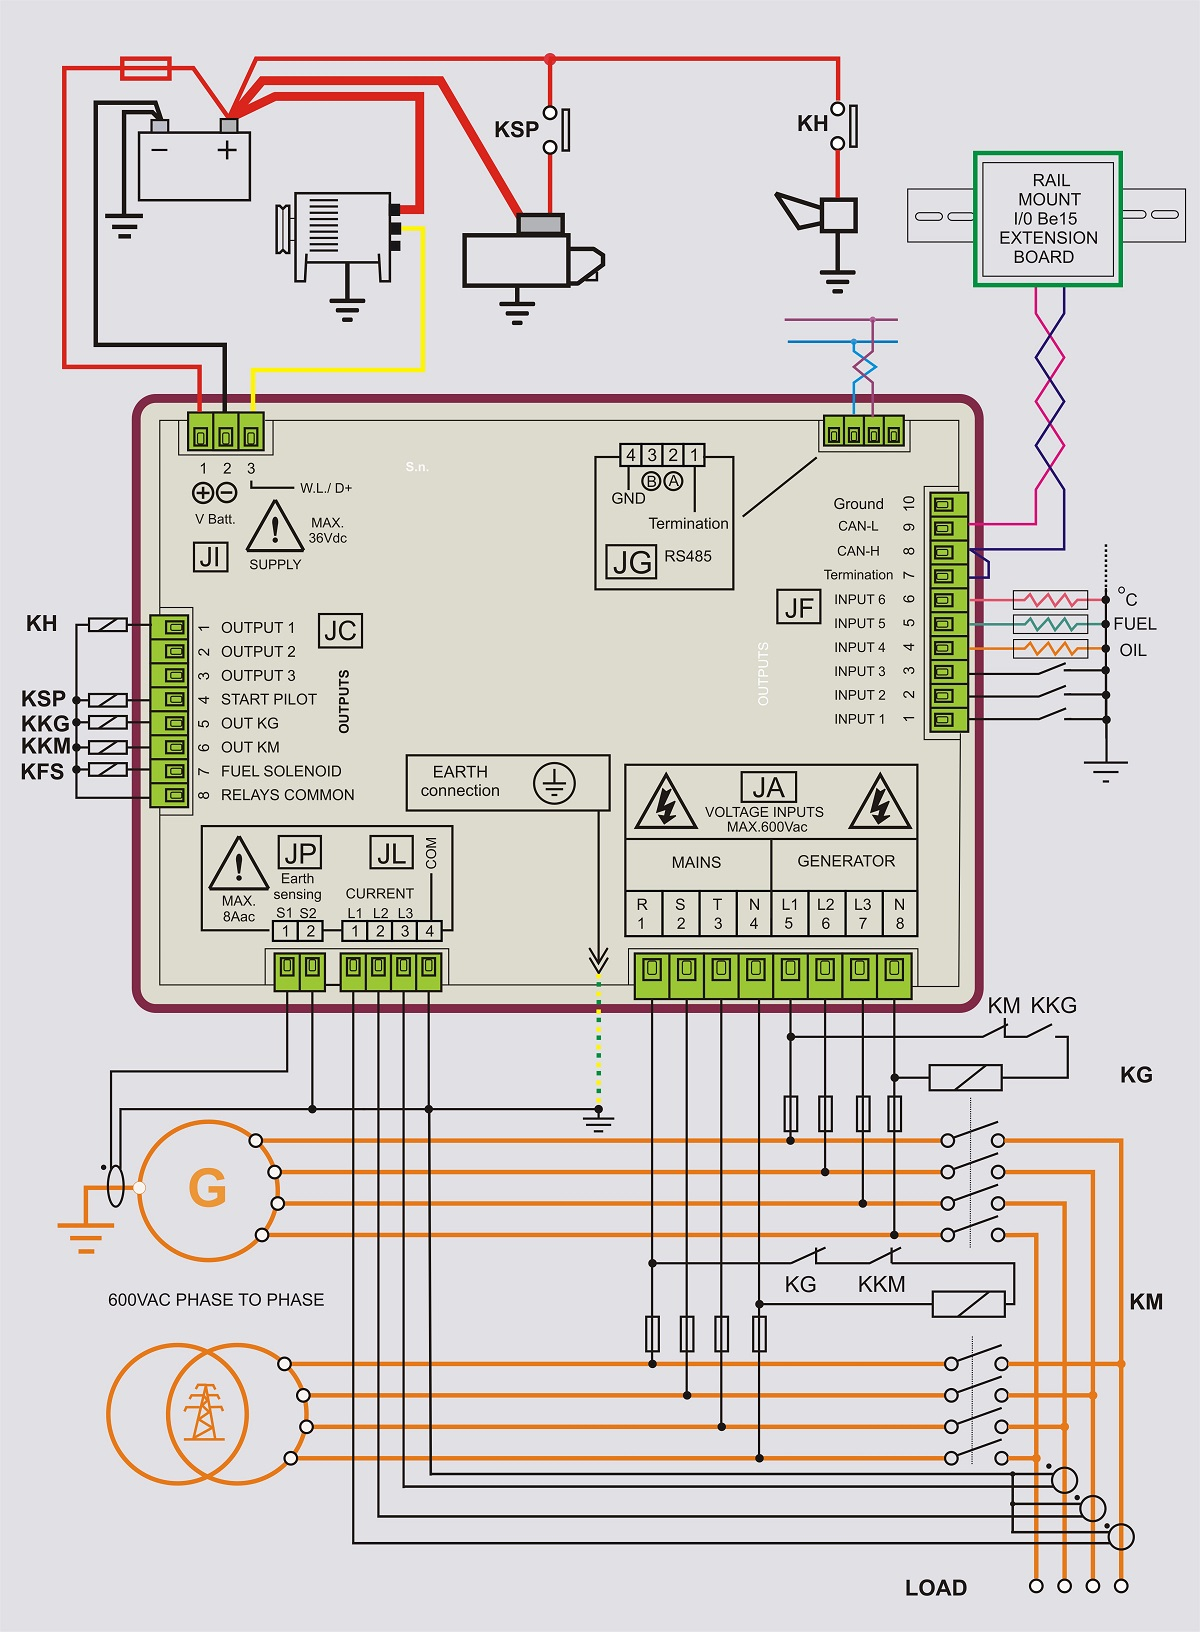 true tuc 27f wiring diagram Download-True Tuc 27F Wiring Diagram Saleexpert Me At Webtor And 1-e